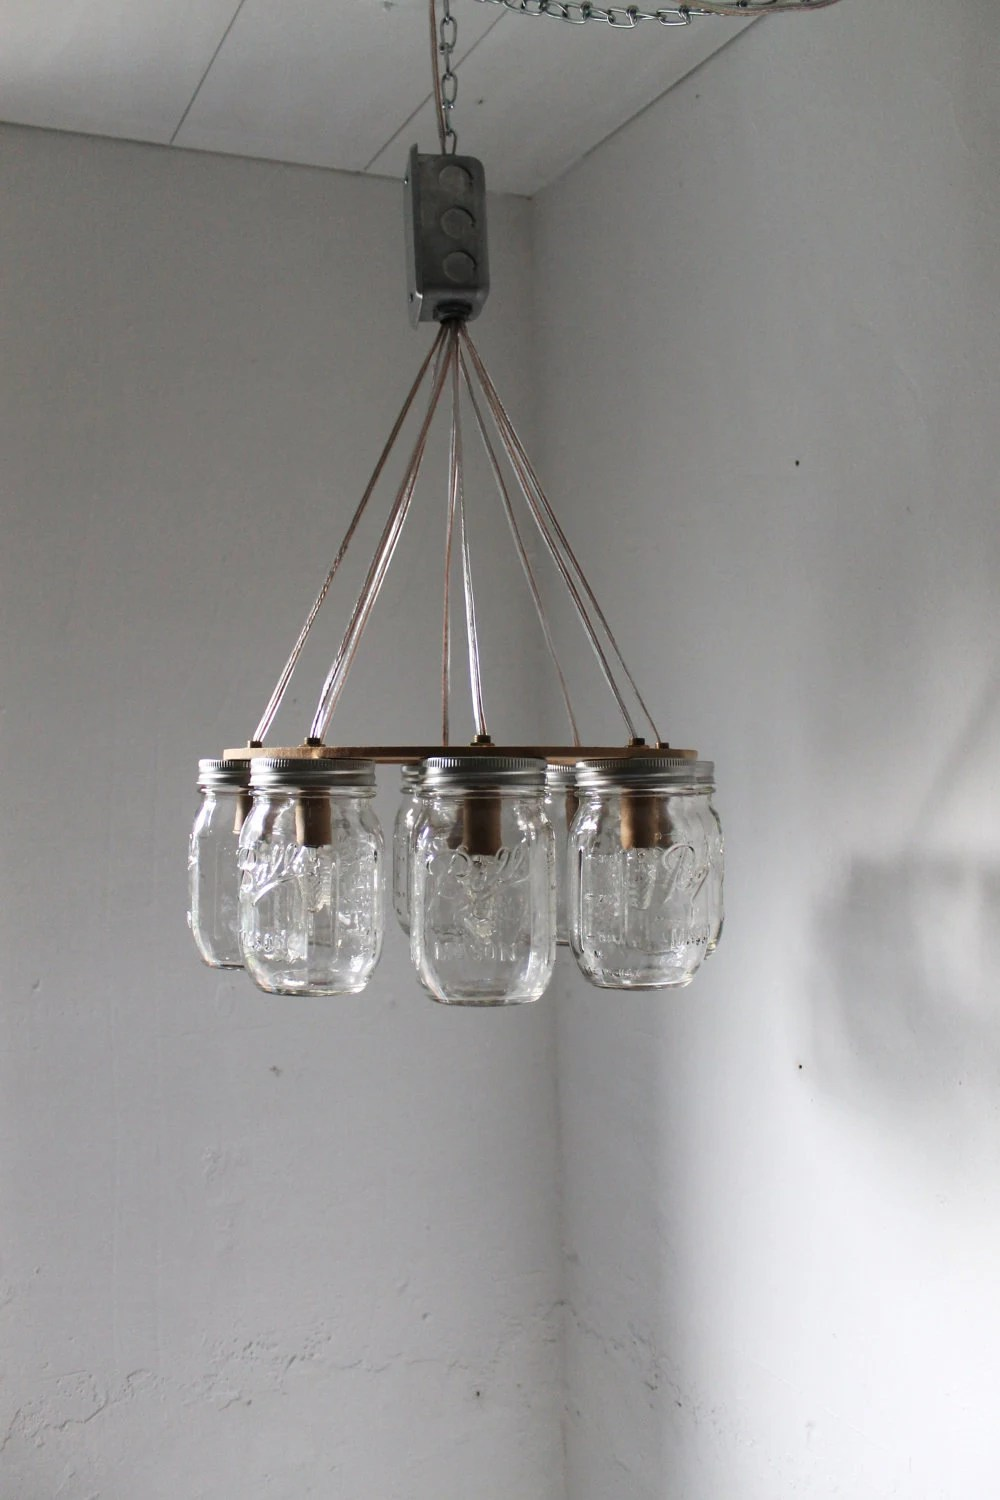 Wagon Wheel Chandelier Items Similar To Wagon Wheel Mason Jar Chandelier - Mason